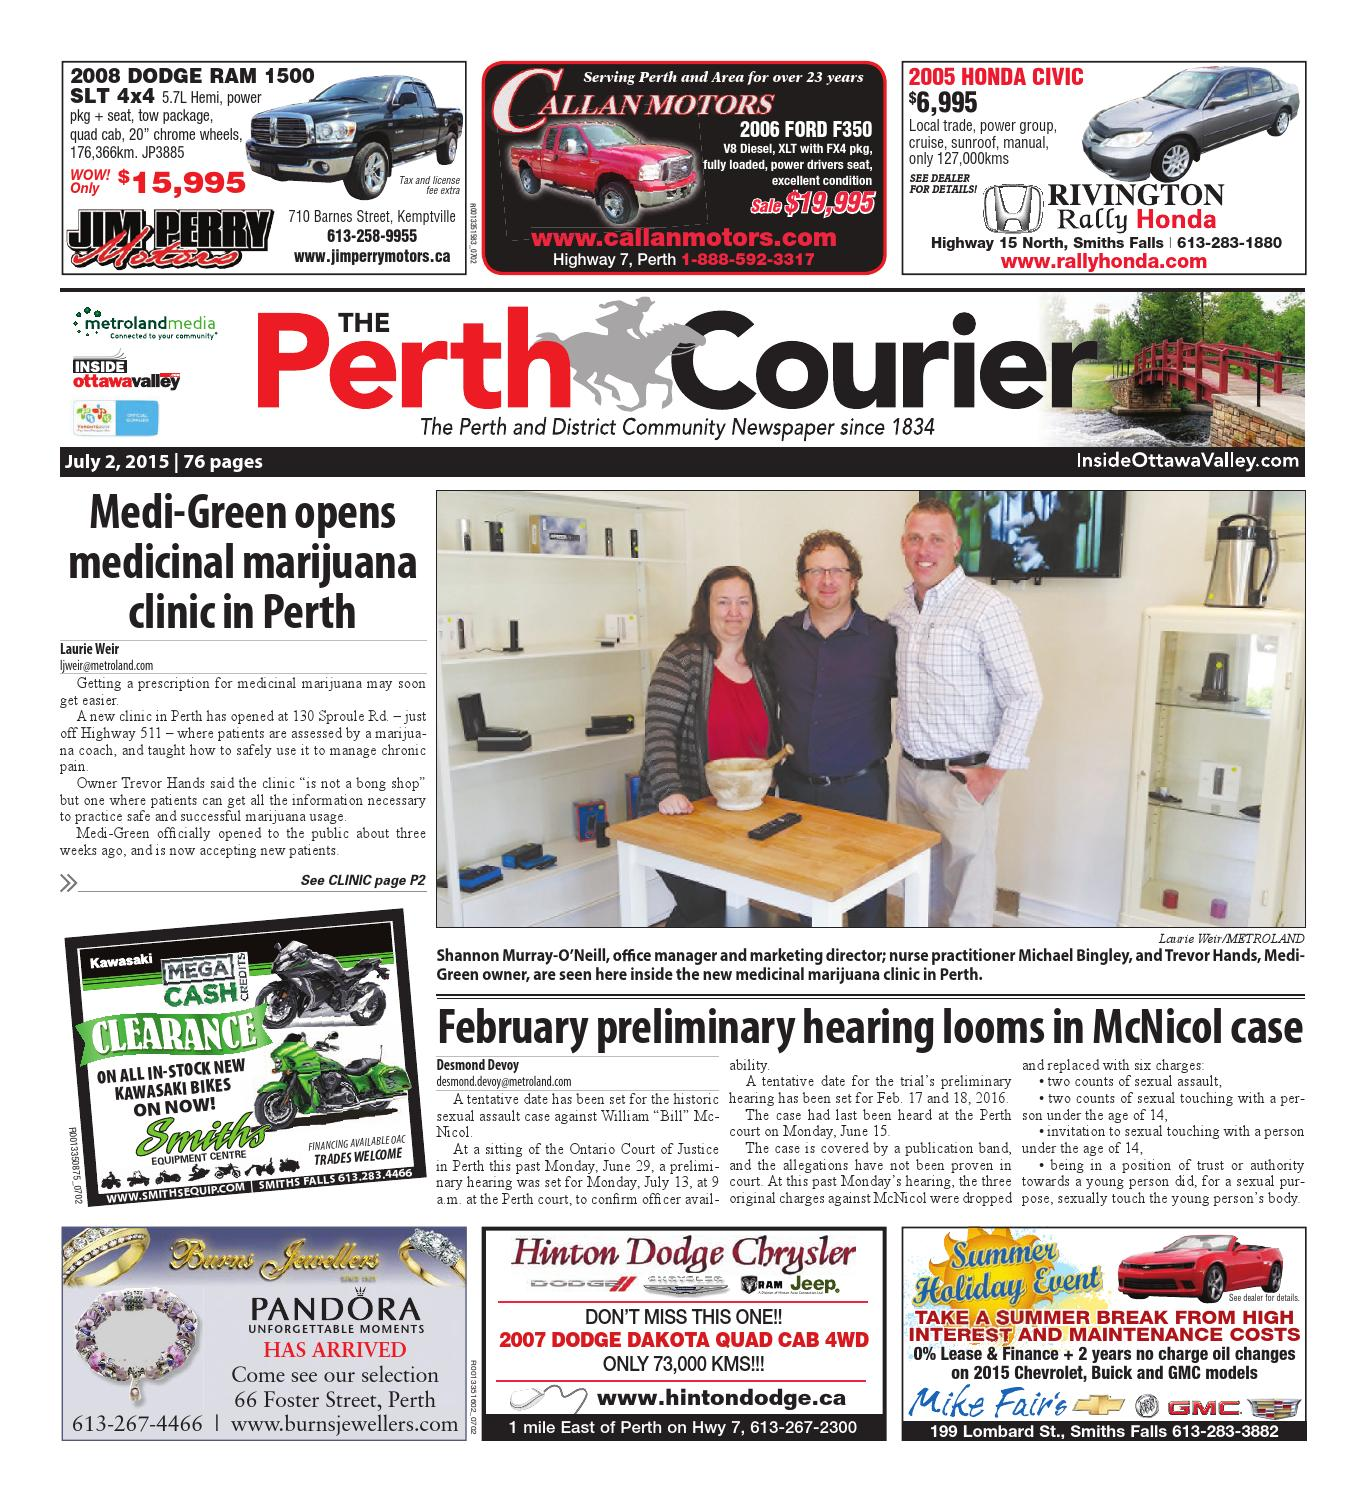 Perth070215 by Metroland East - The Perth Courier - issuu